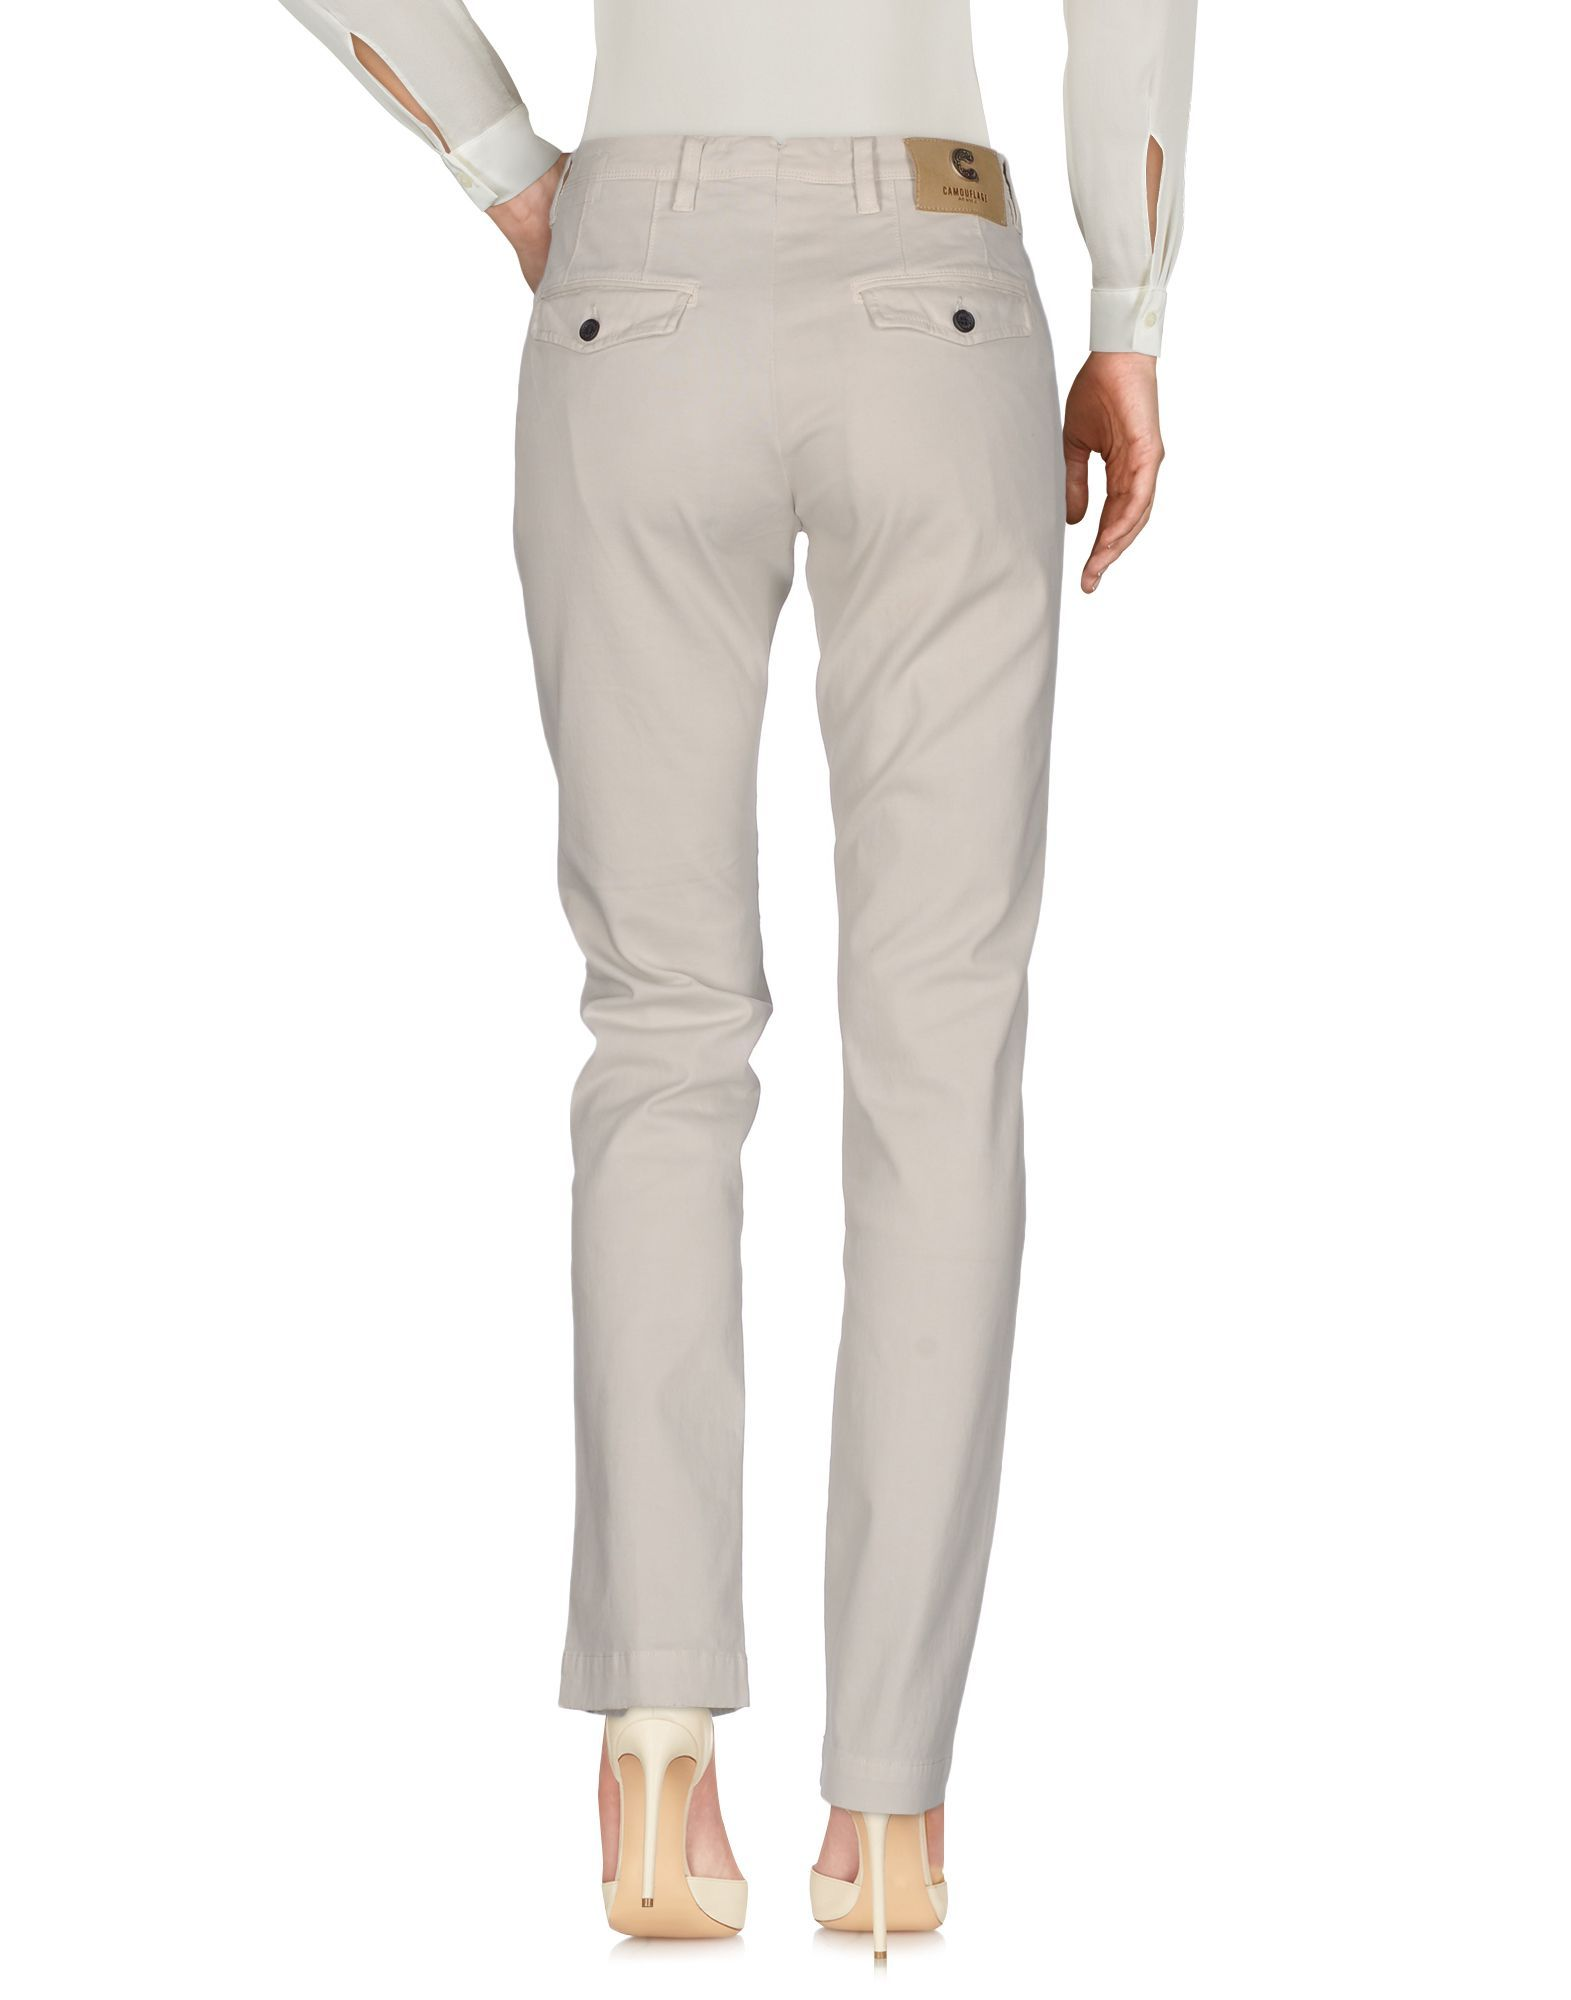 Trousers Camouflage Ar And J. Light Grey Women's Cotton